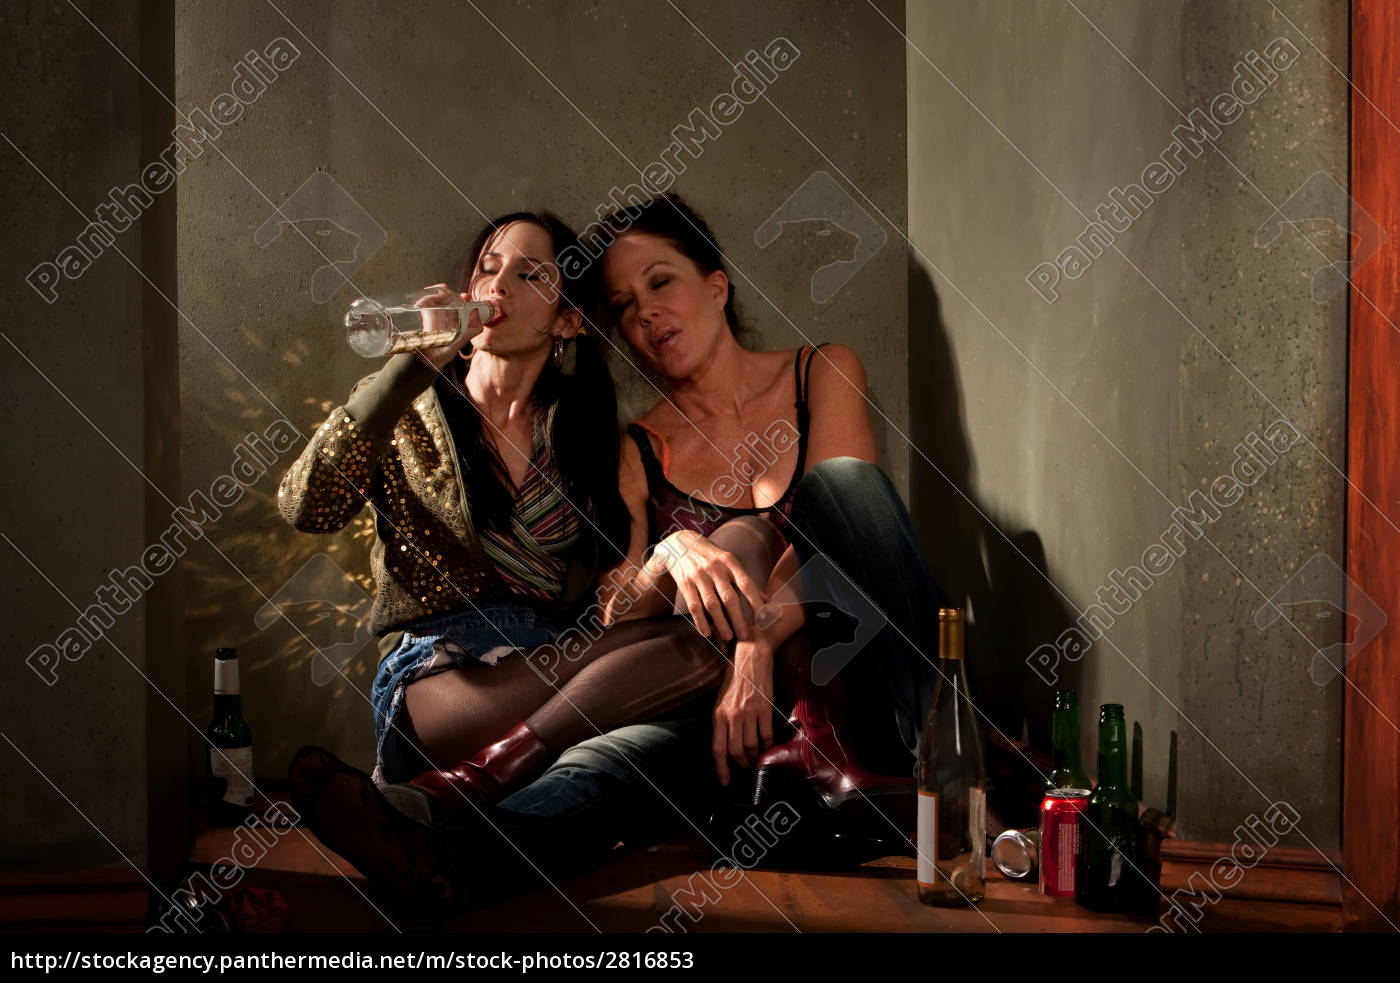 women, surrounded, by, booze, bottles, in - 2816853